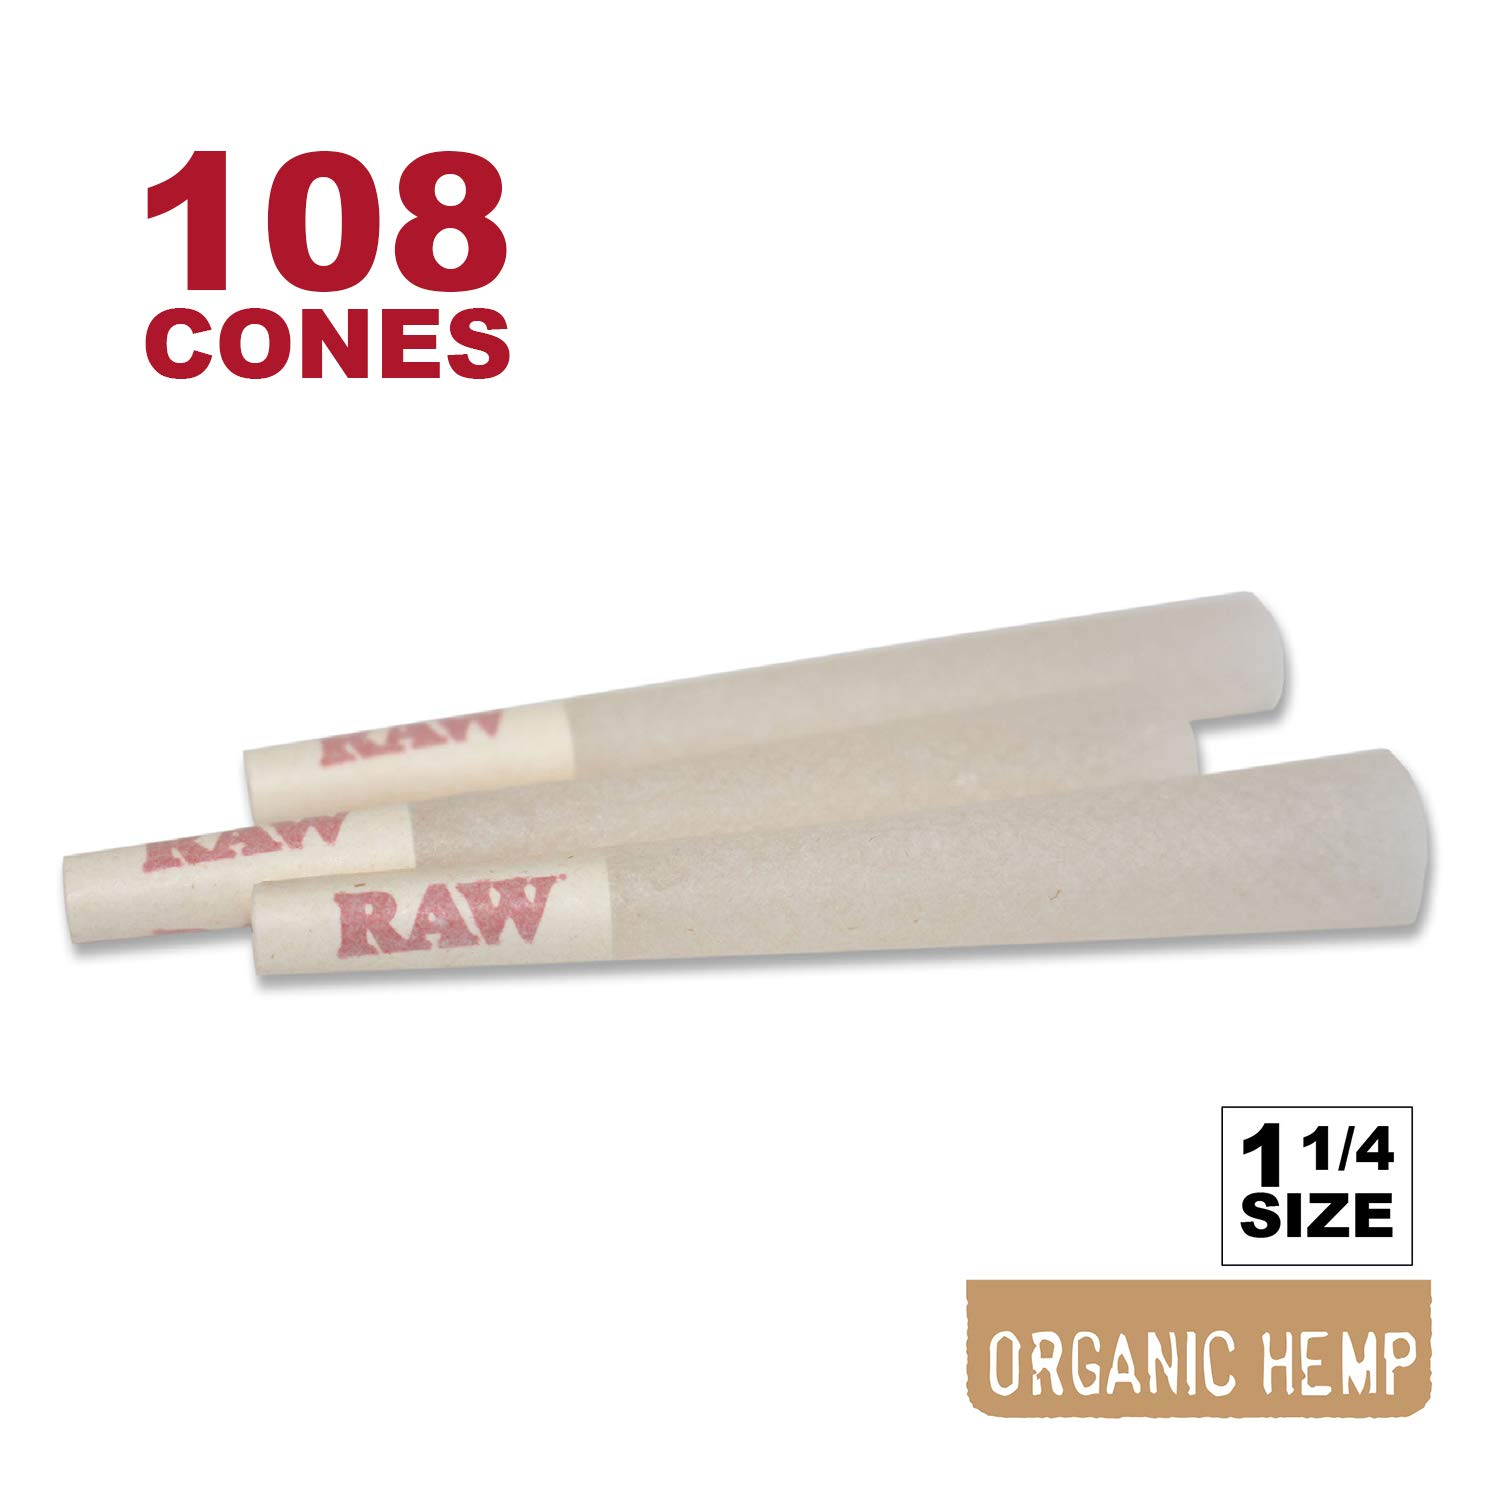 RAW 108 Organic 1 1/4 Cones - W Gallery Scoop Sticker - Discreet Box - Pure Hemp 1.25 84mm Pre-Rolled Cones - 26mm Filter Tips - Natural Unbleached Unrefined Rolling Papers - 100 + Bonus Pack